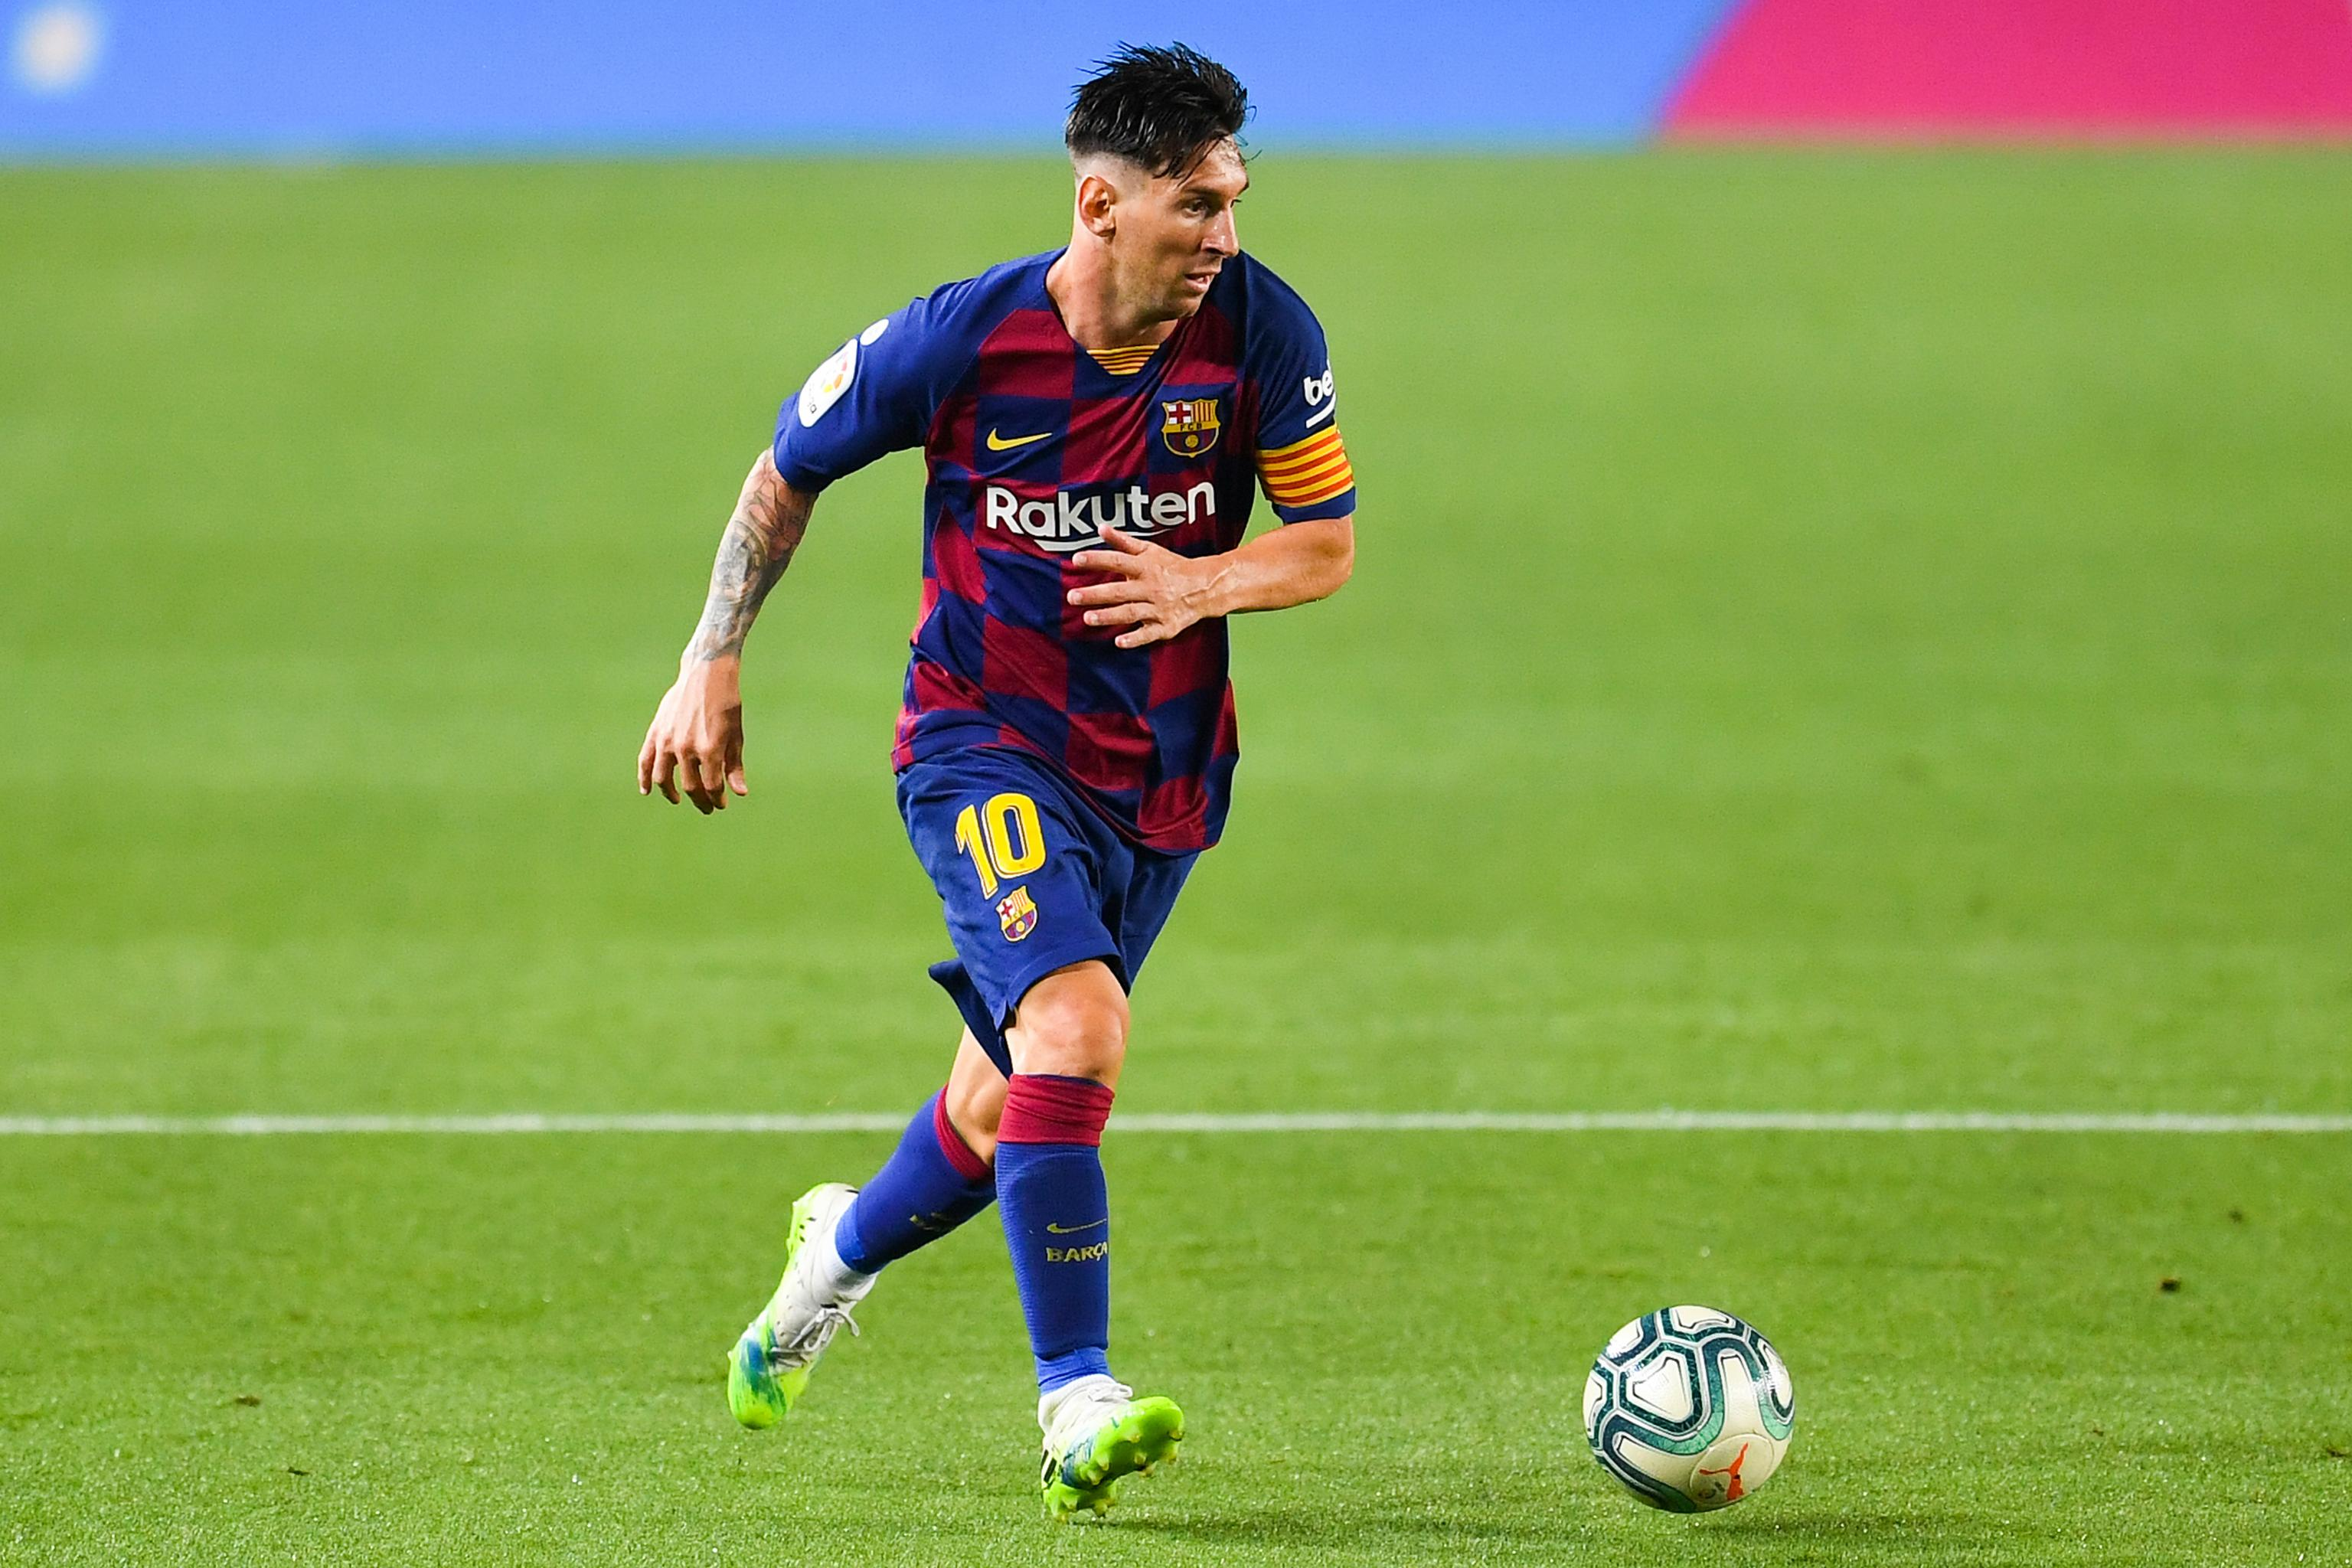 report lionel messi ends barcelona contract talks prepared to leave in 2021 bleacher report latest news videos and highlights lionel messi ends barcelona contract